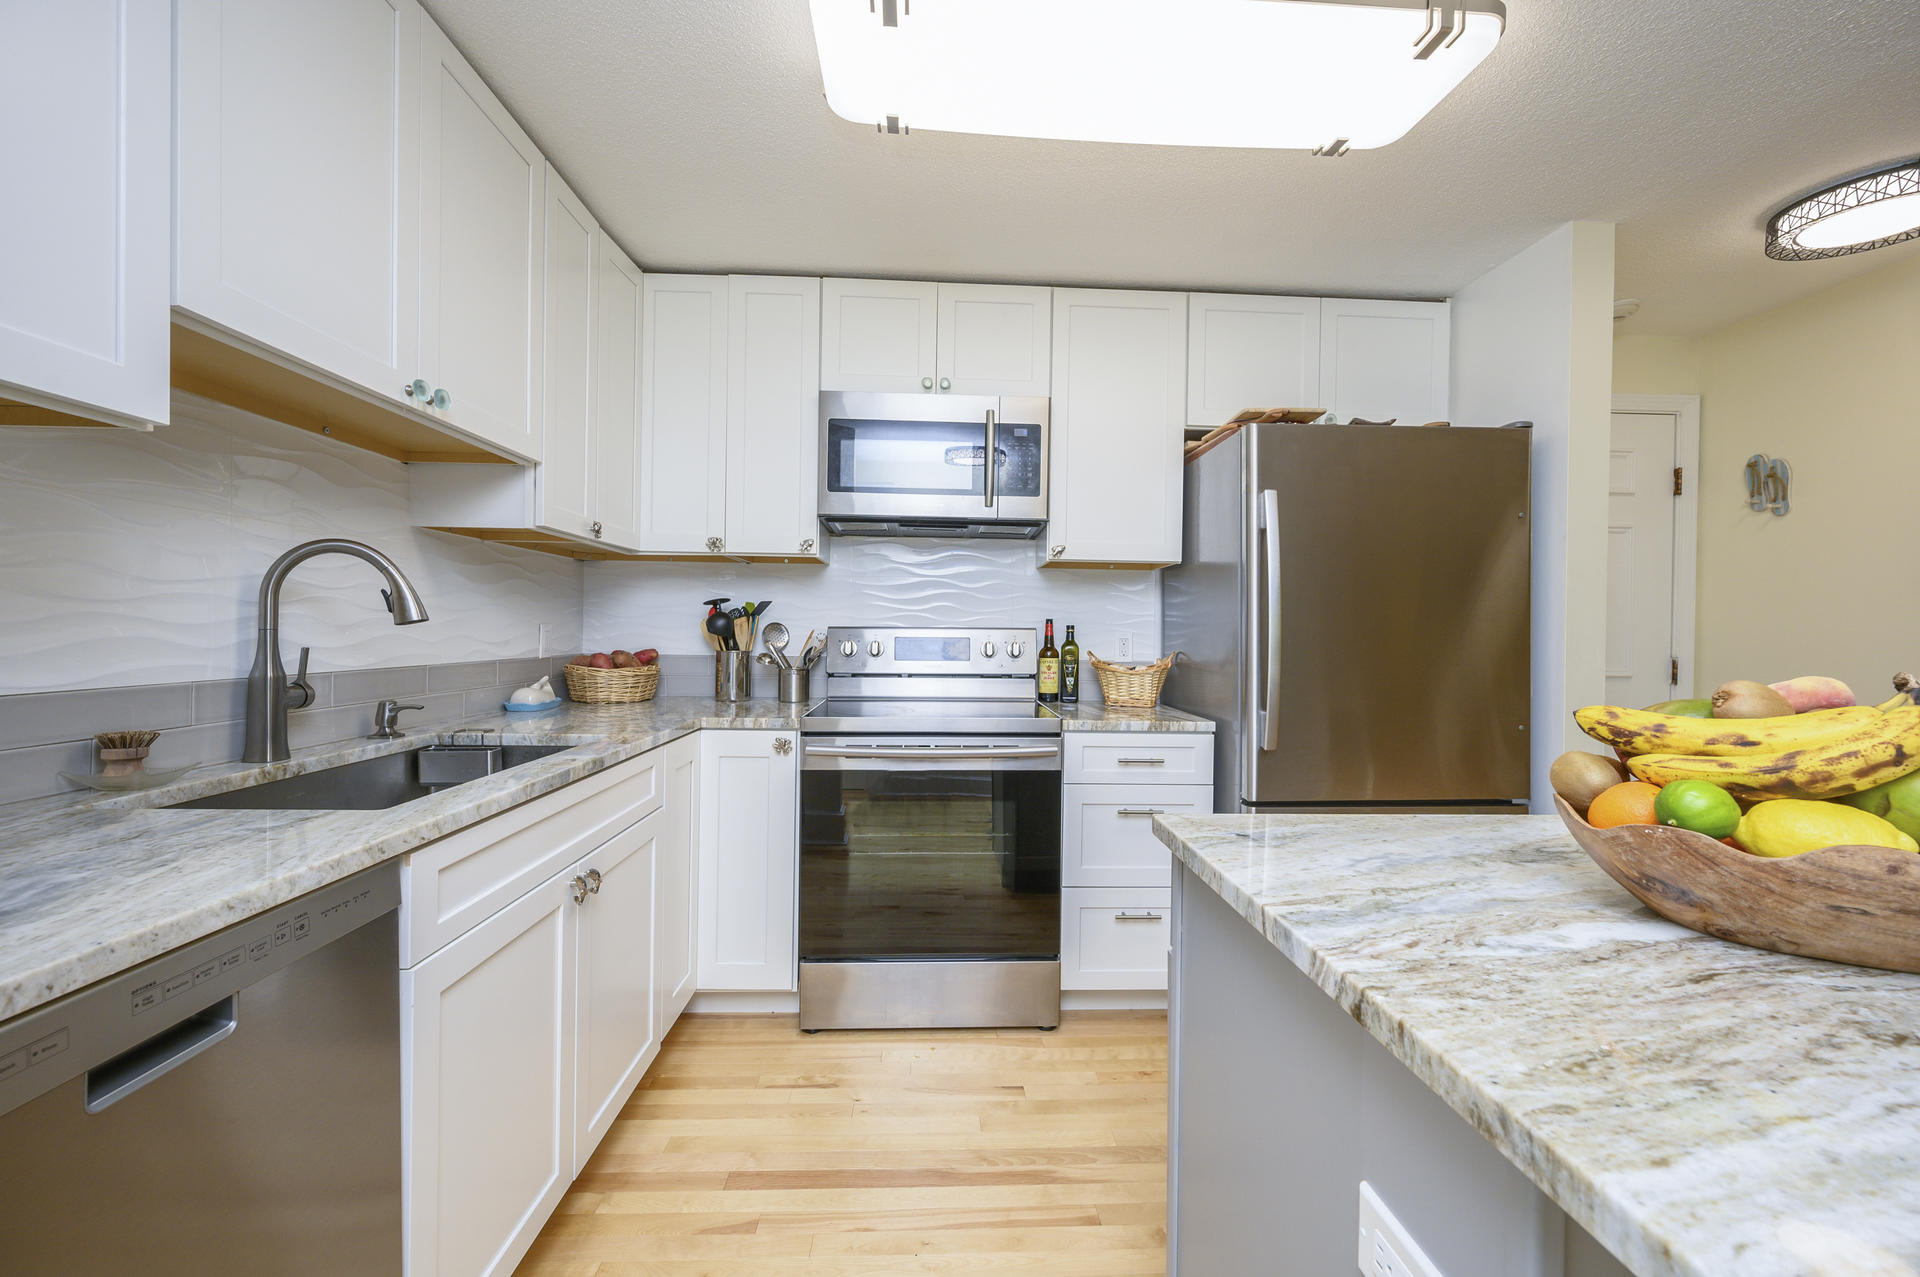 24-old-colony-way-orleans-ma-02653